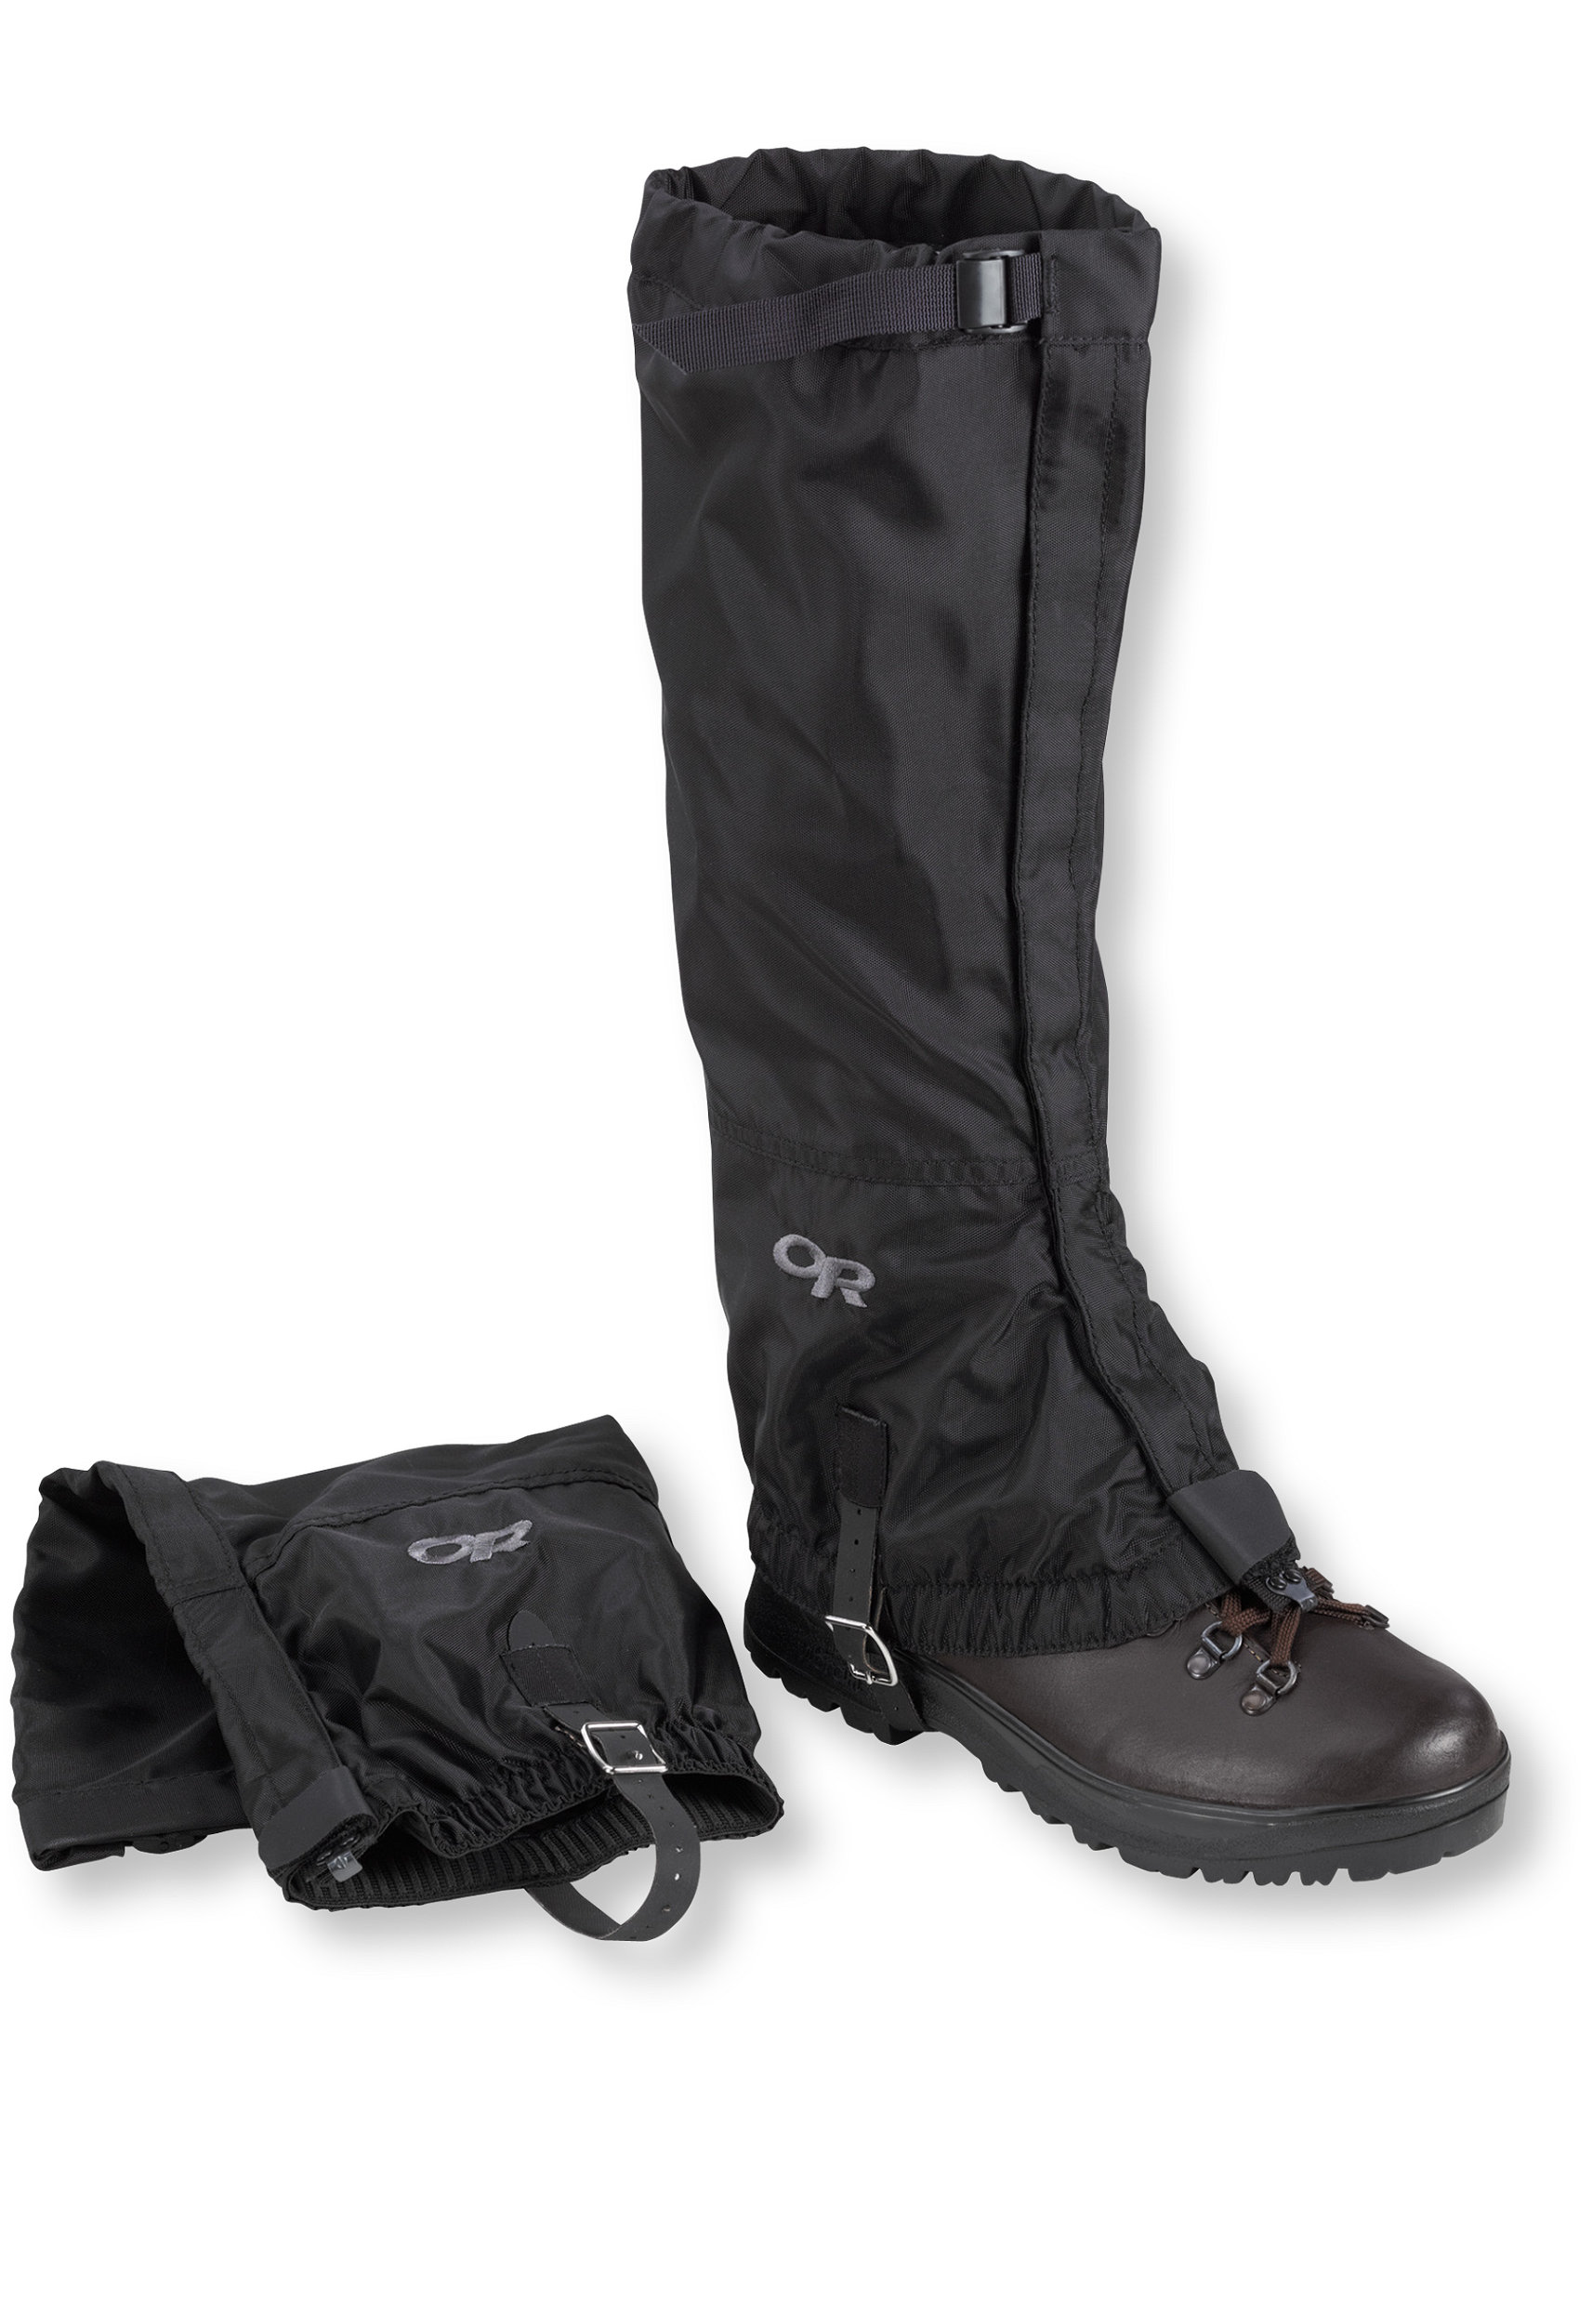 photo: Outdoor Research Rocky Mountain High Gaiters gaiter